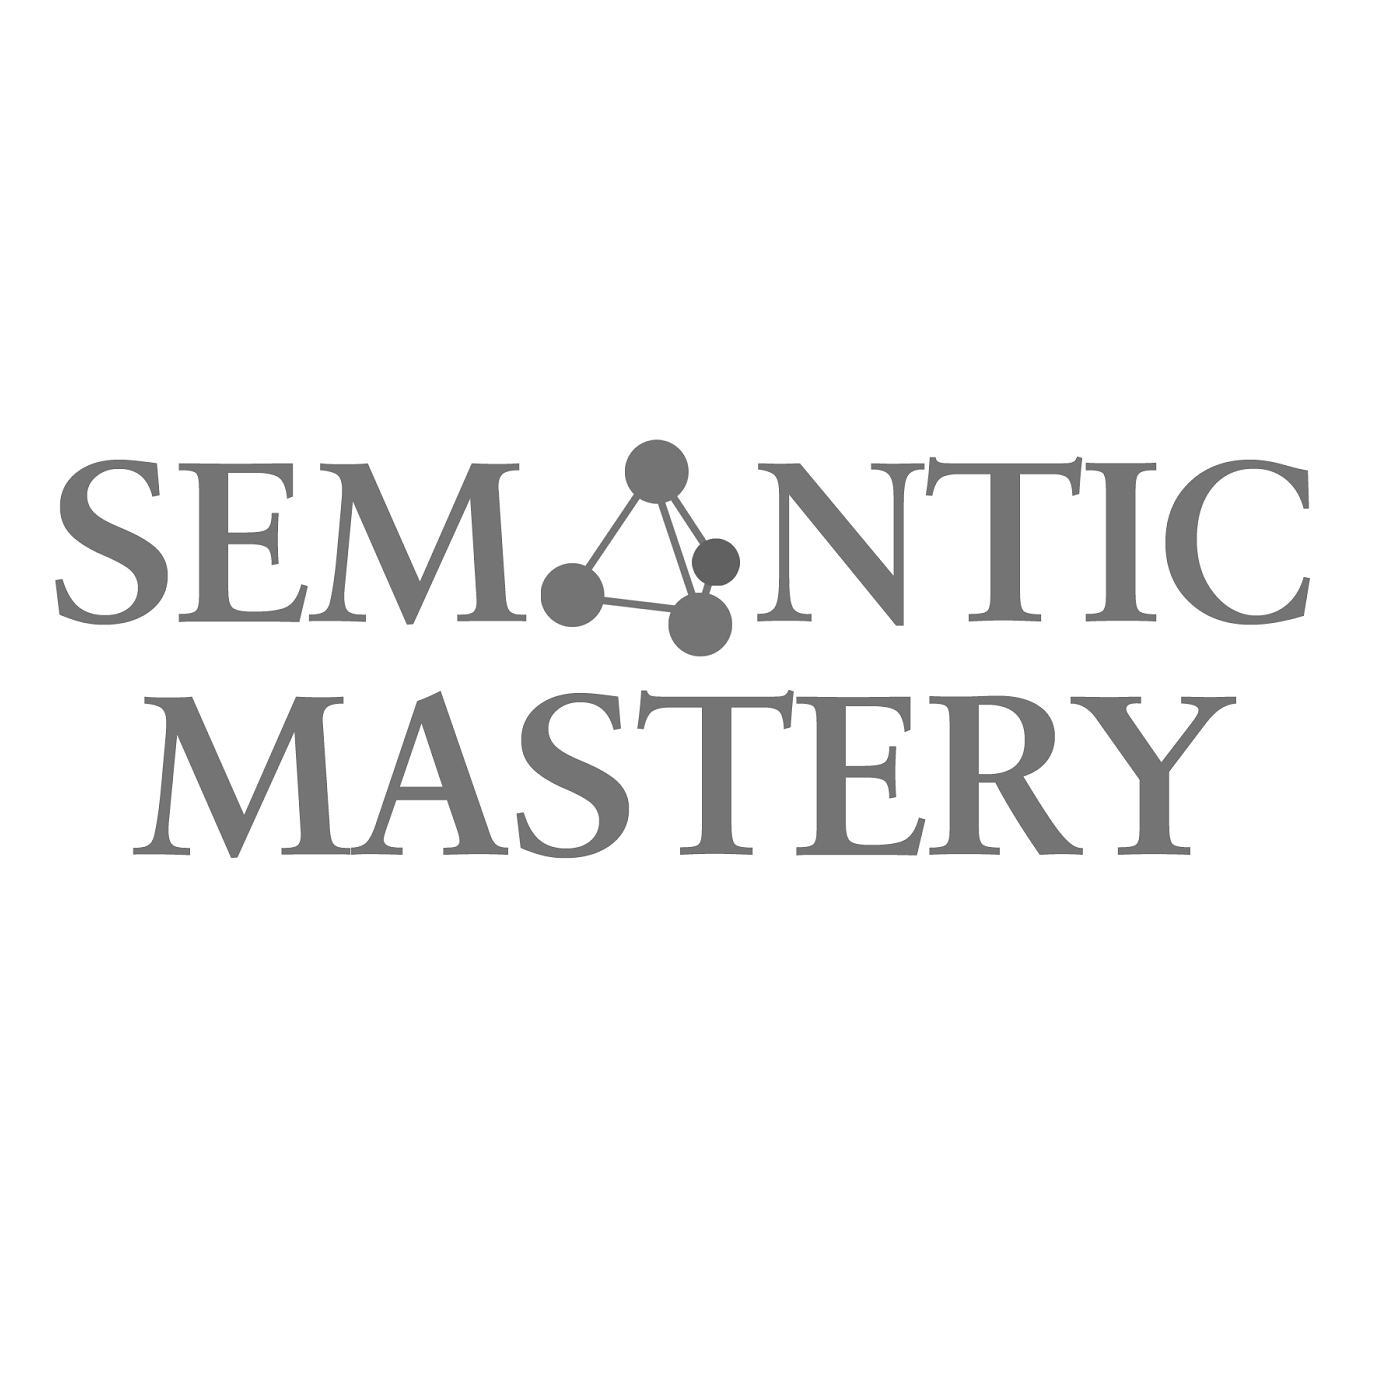 Semantic Mastery Podcast